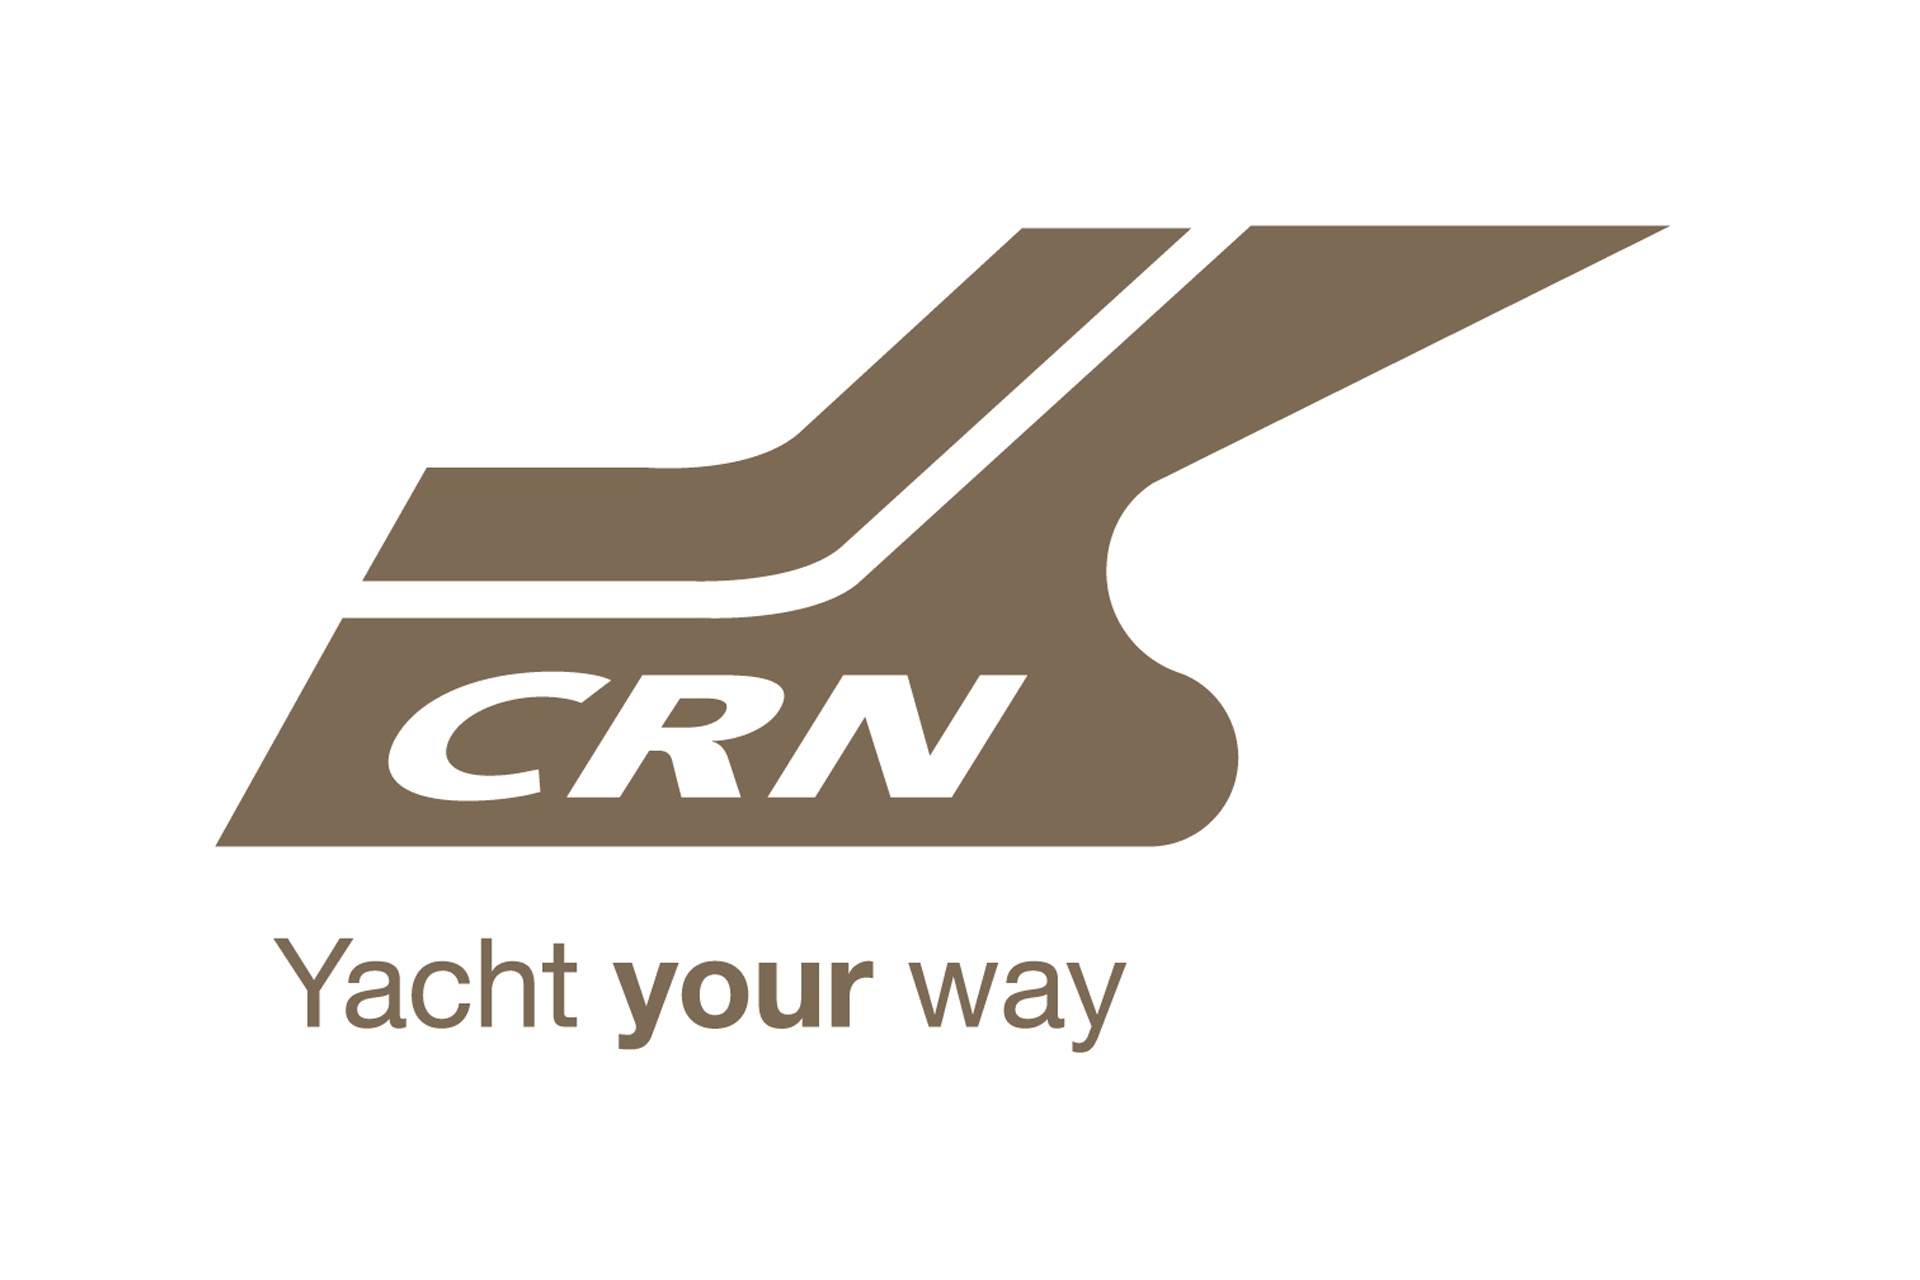 CRN Shipyards